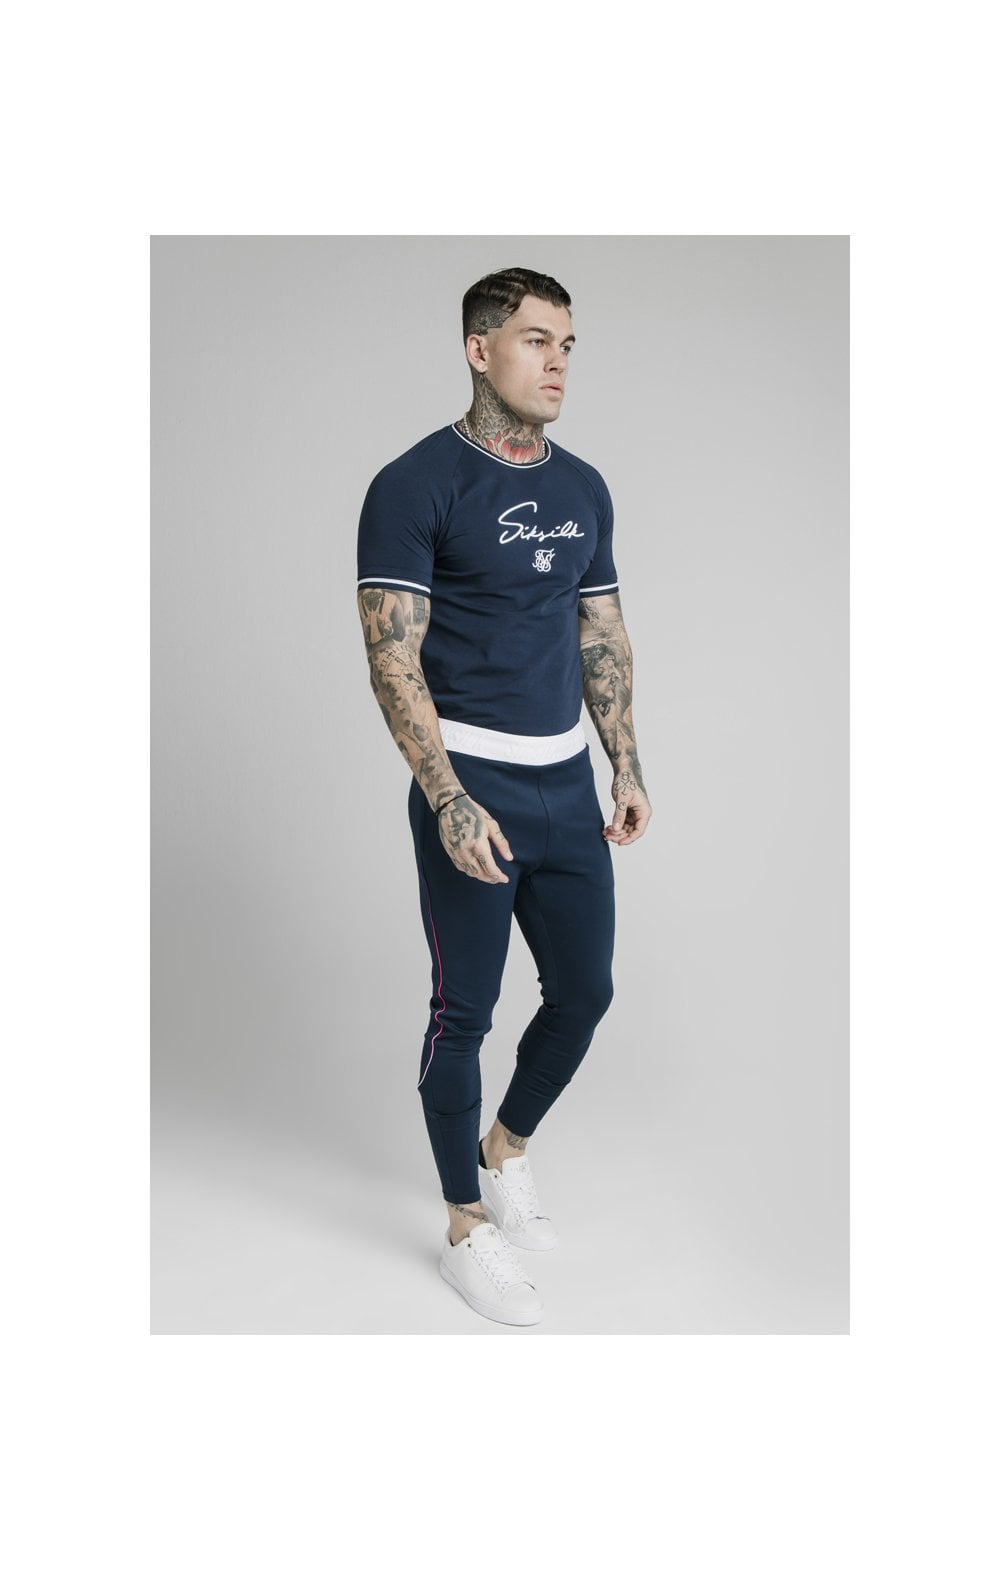 Load image into Gallery viewer, SikSilk Athlete Prestige Fade Track Pants - Navy (5)